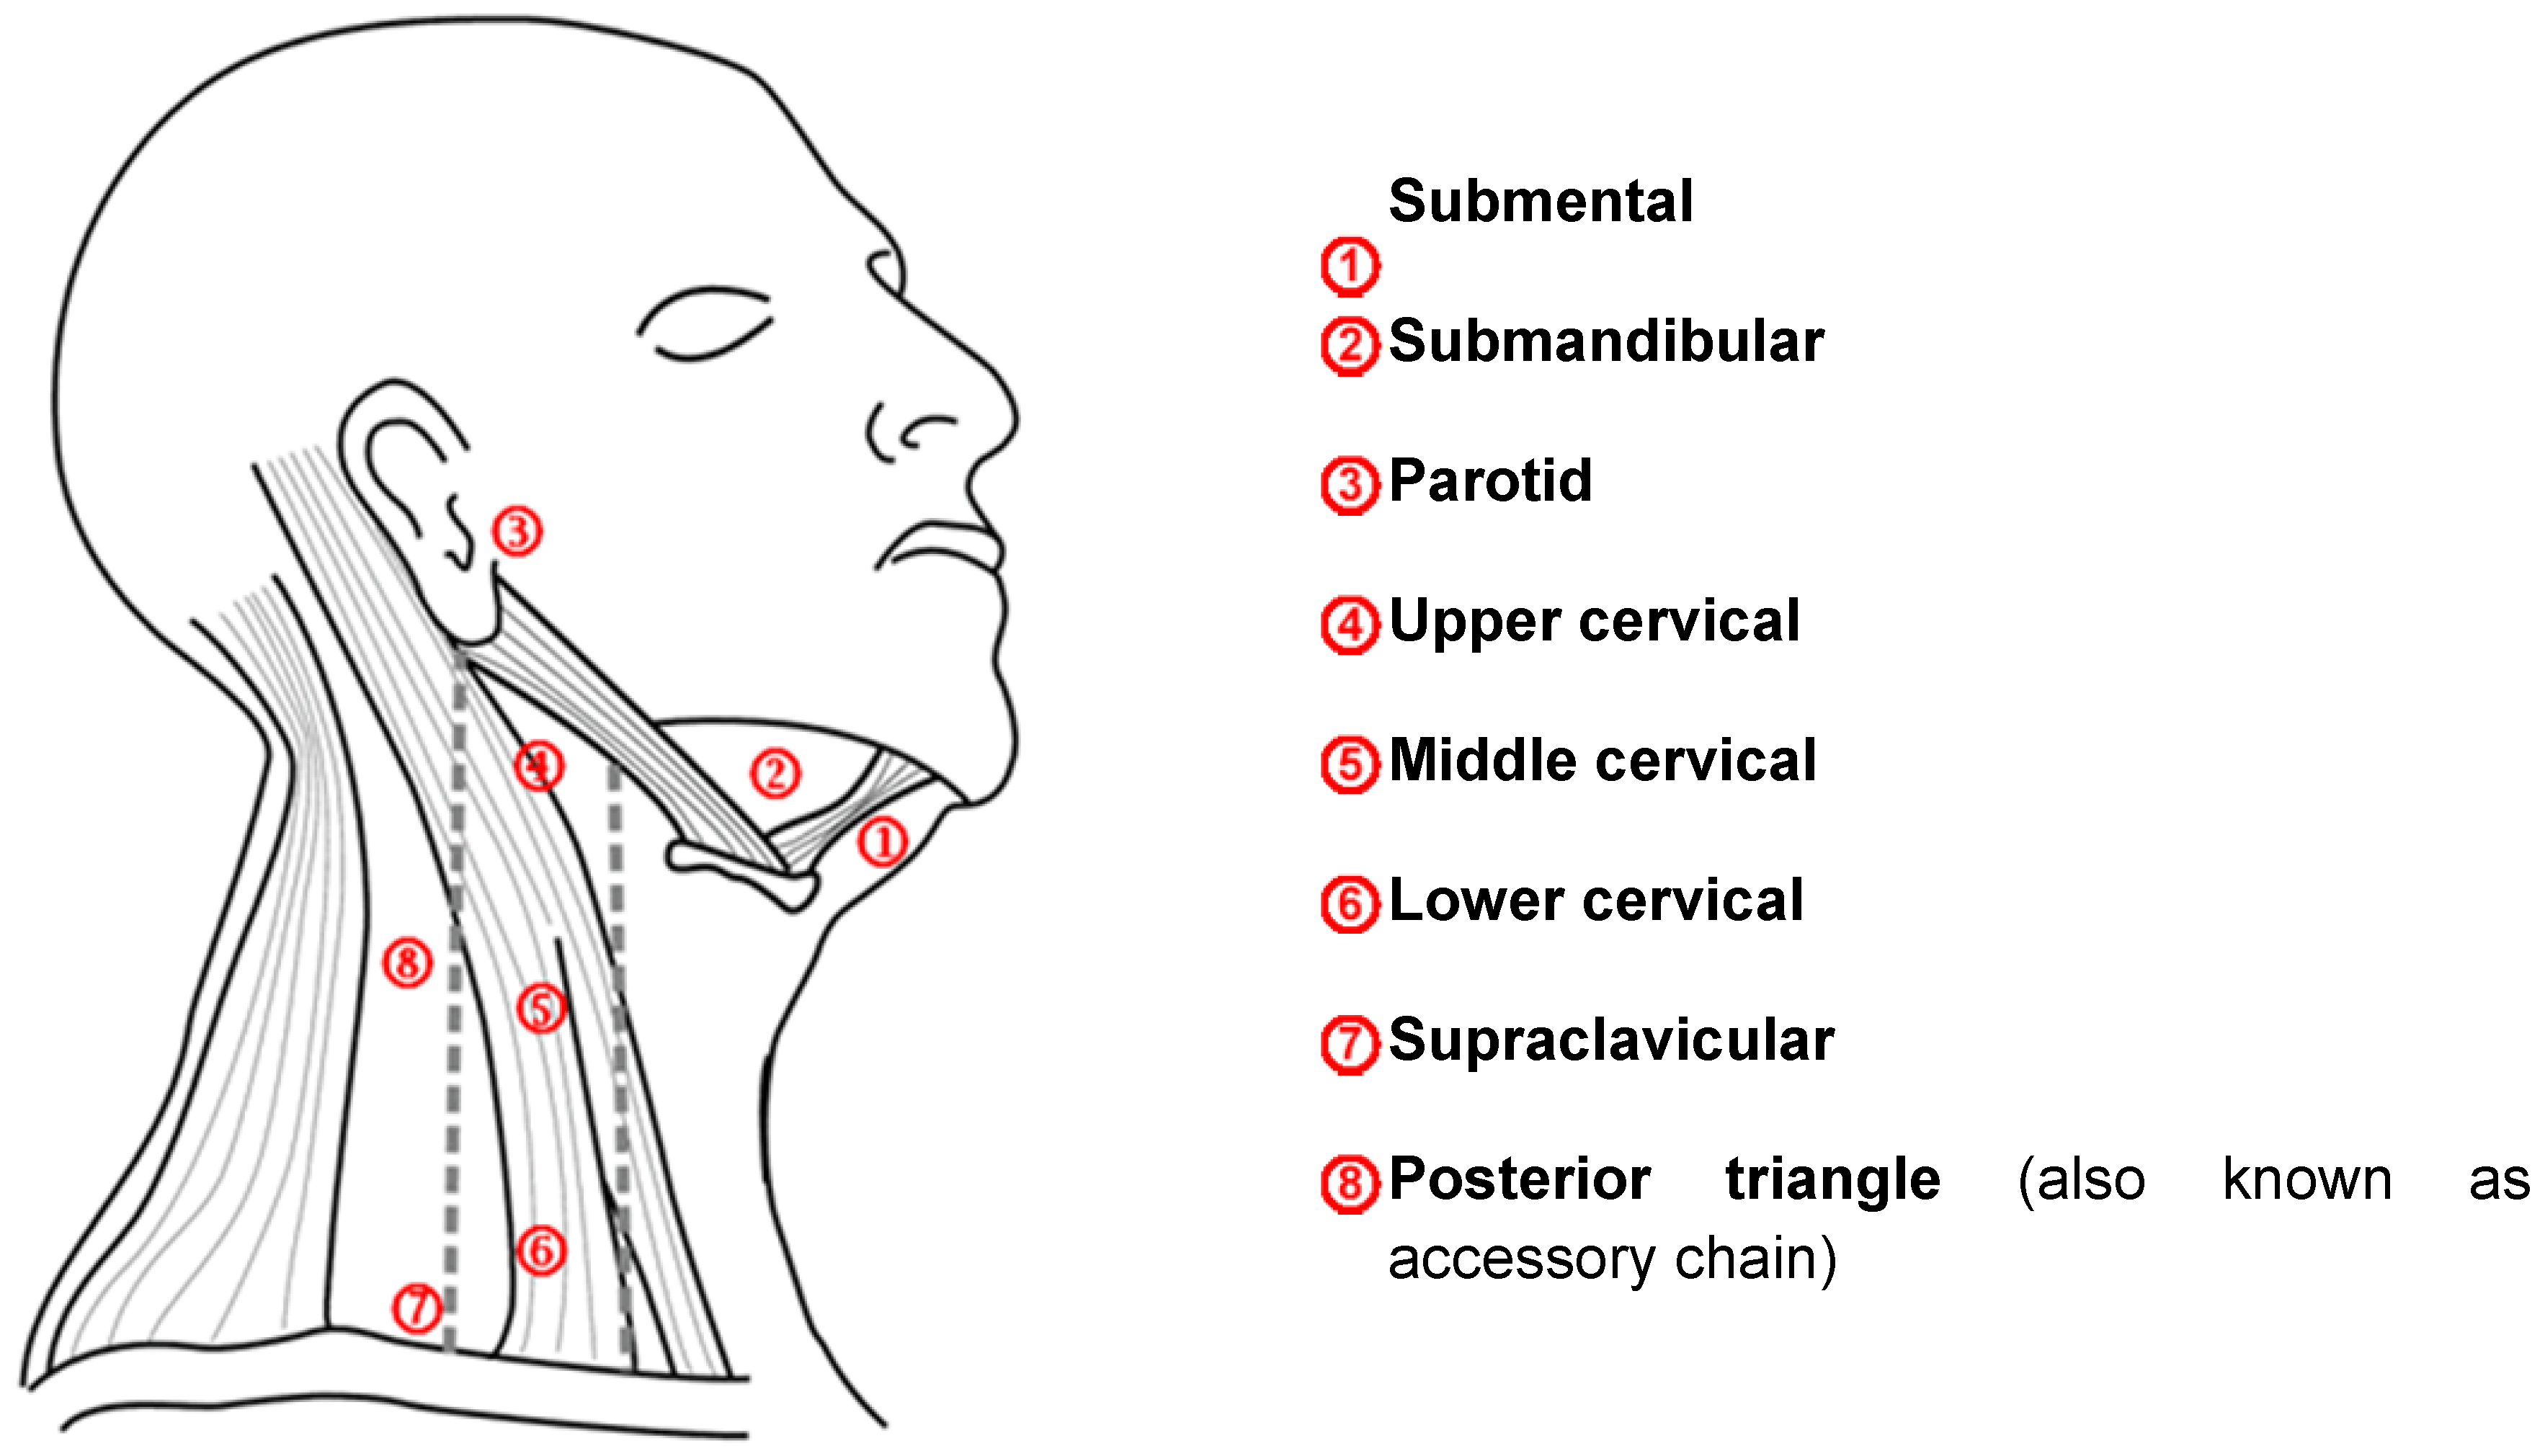 What Specific Region Does The Buccal Lymph Node Drain